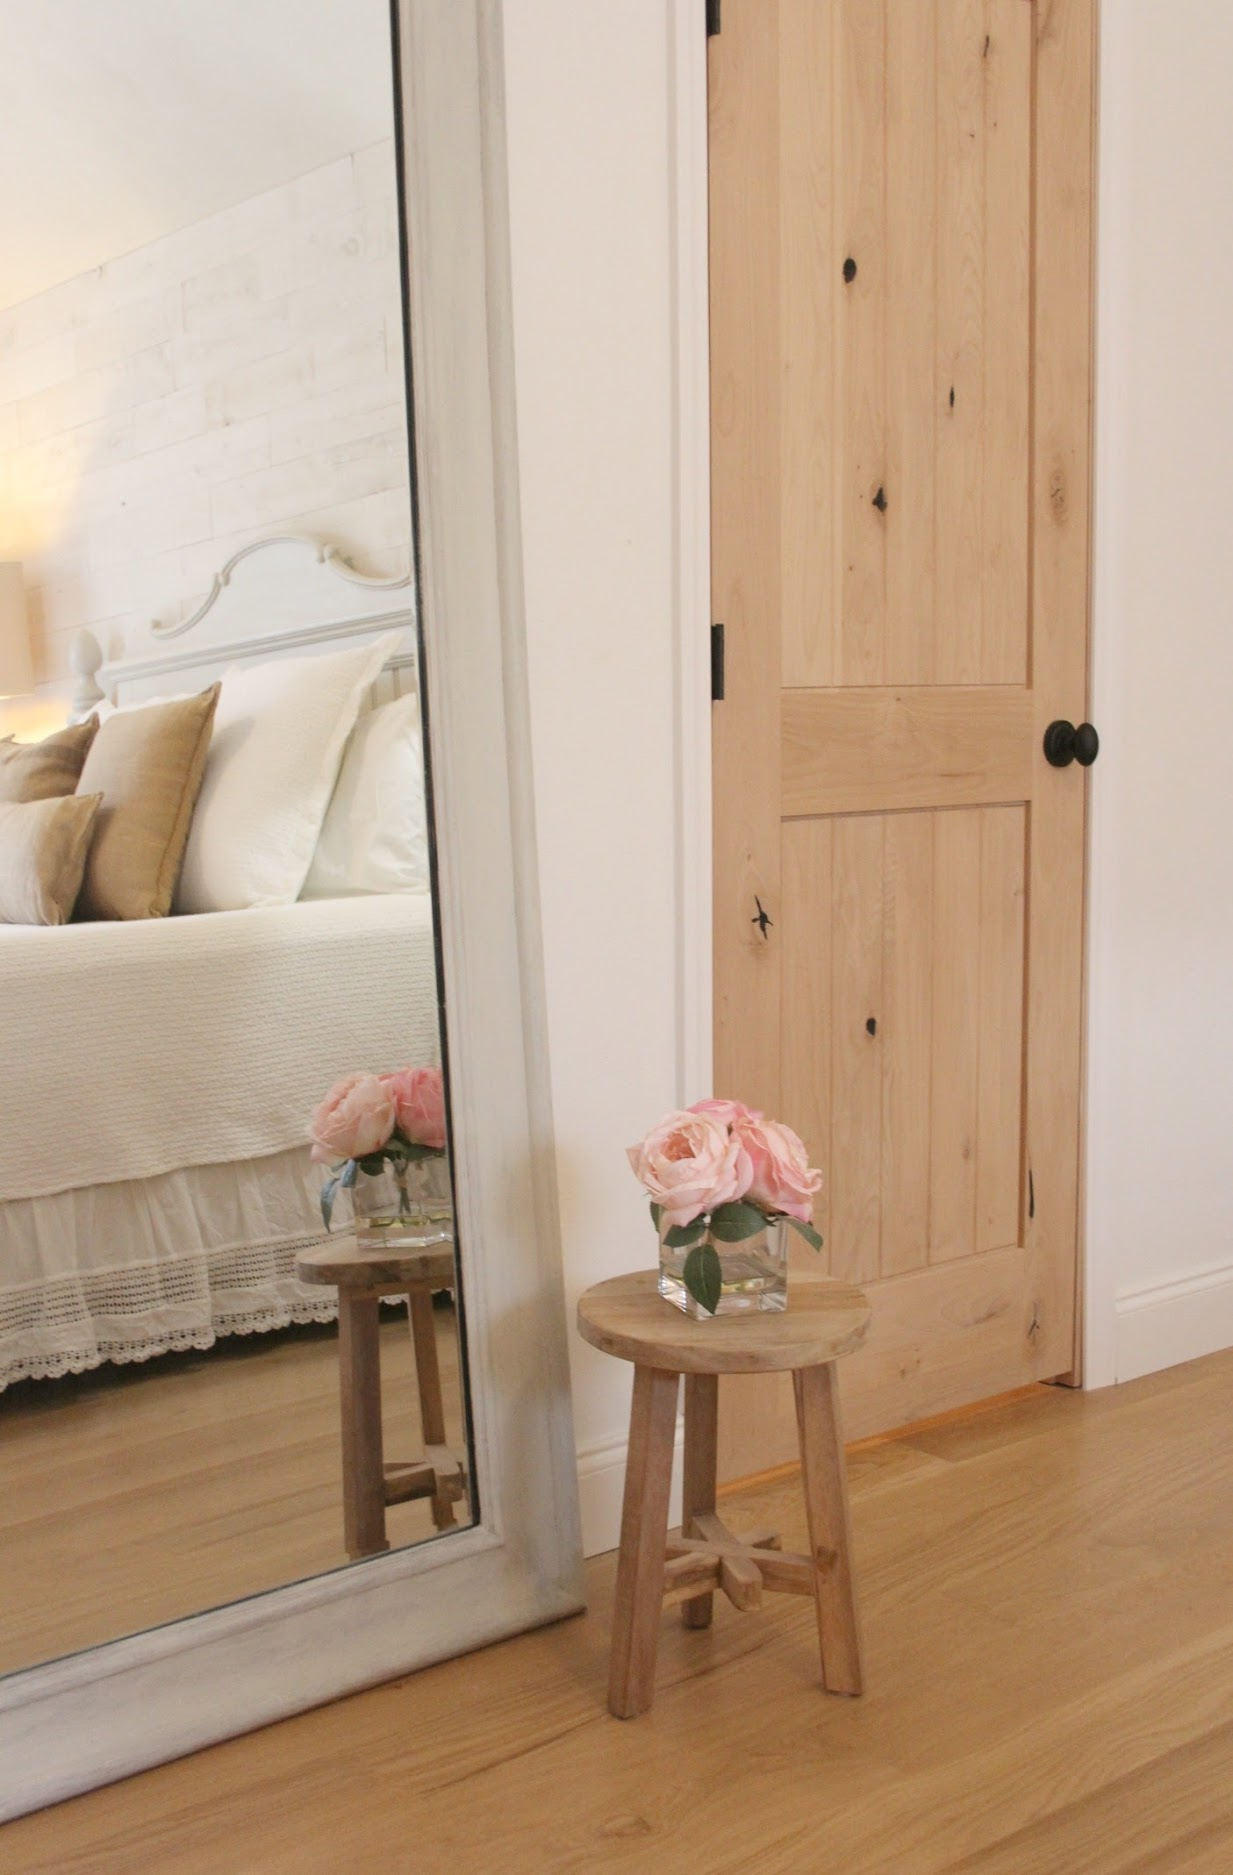 Knotty alder interior doors in our romantic cottage style bedroom and a rustic three leg teak stool. Hello Lovely Studio.